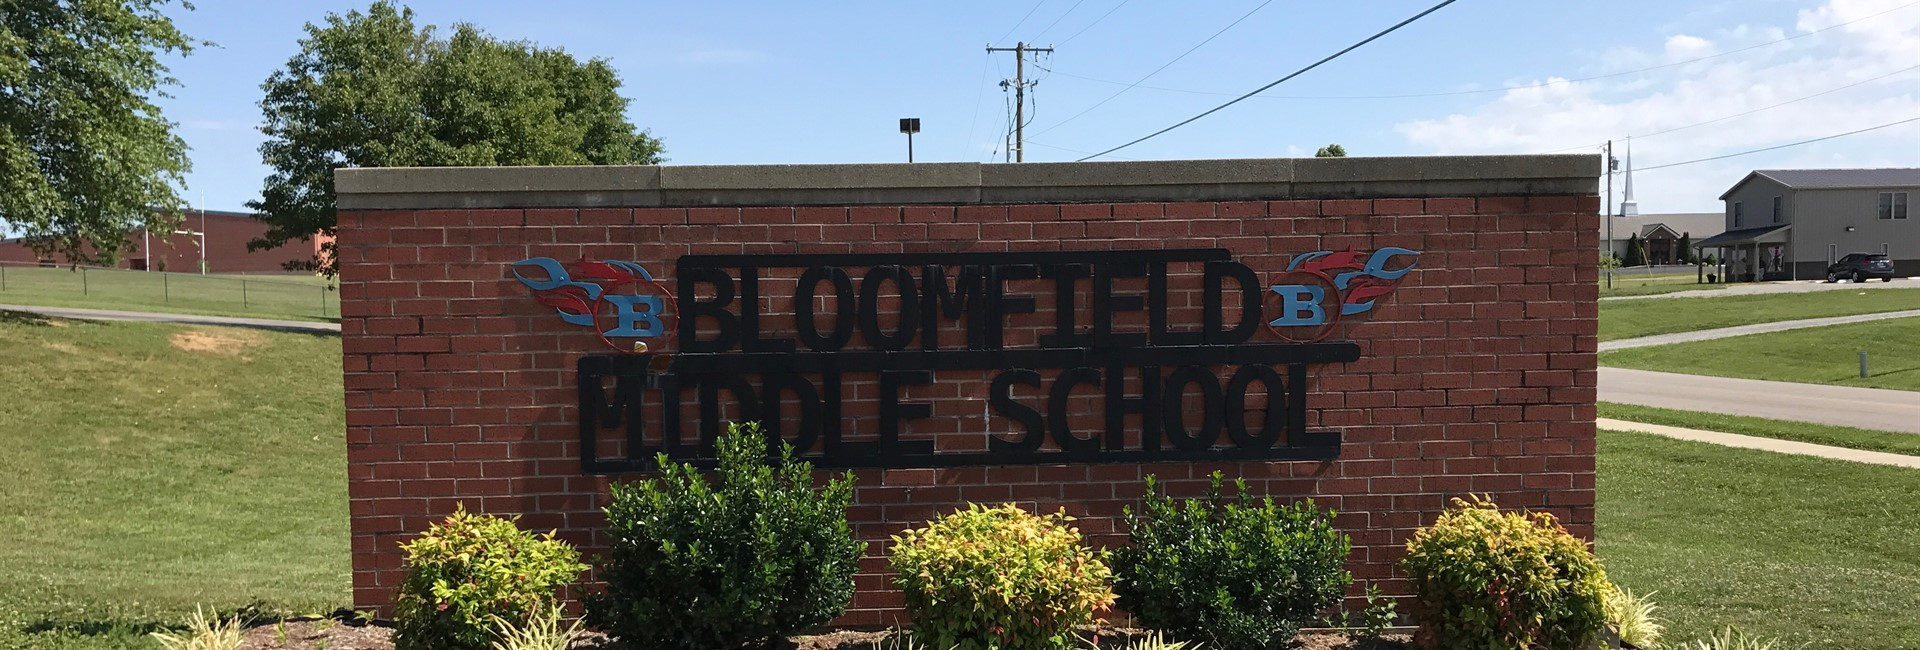 Bloomfield Middle School